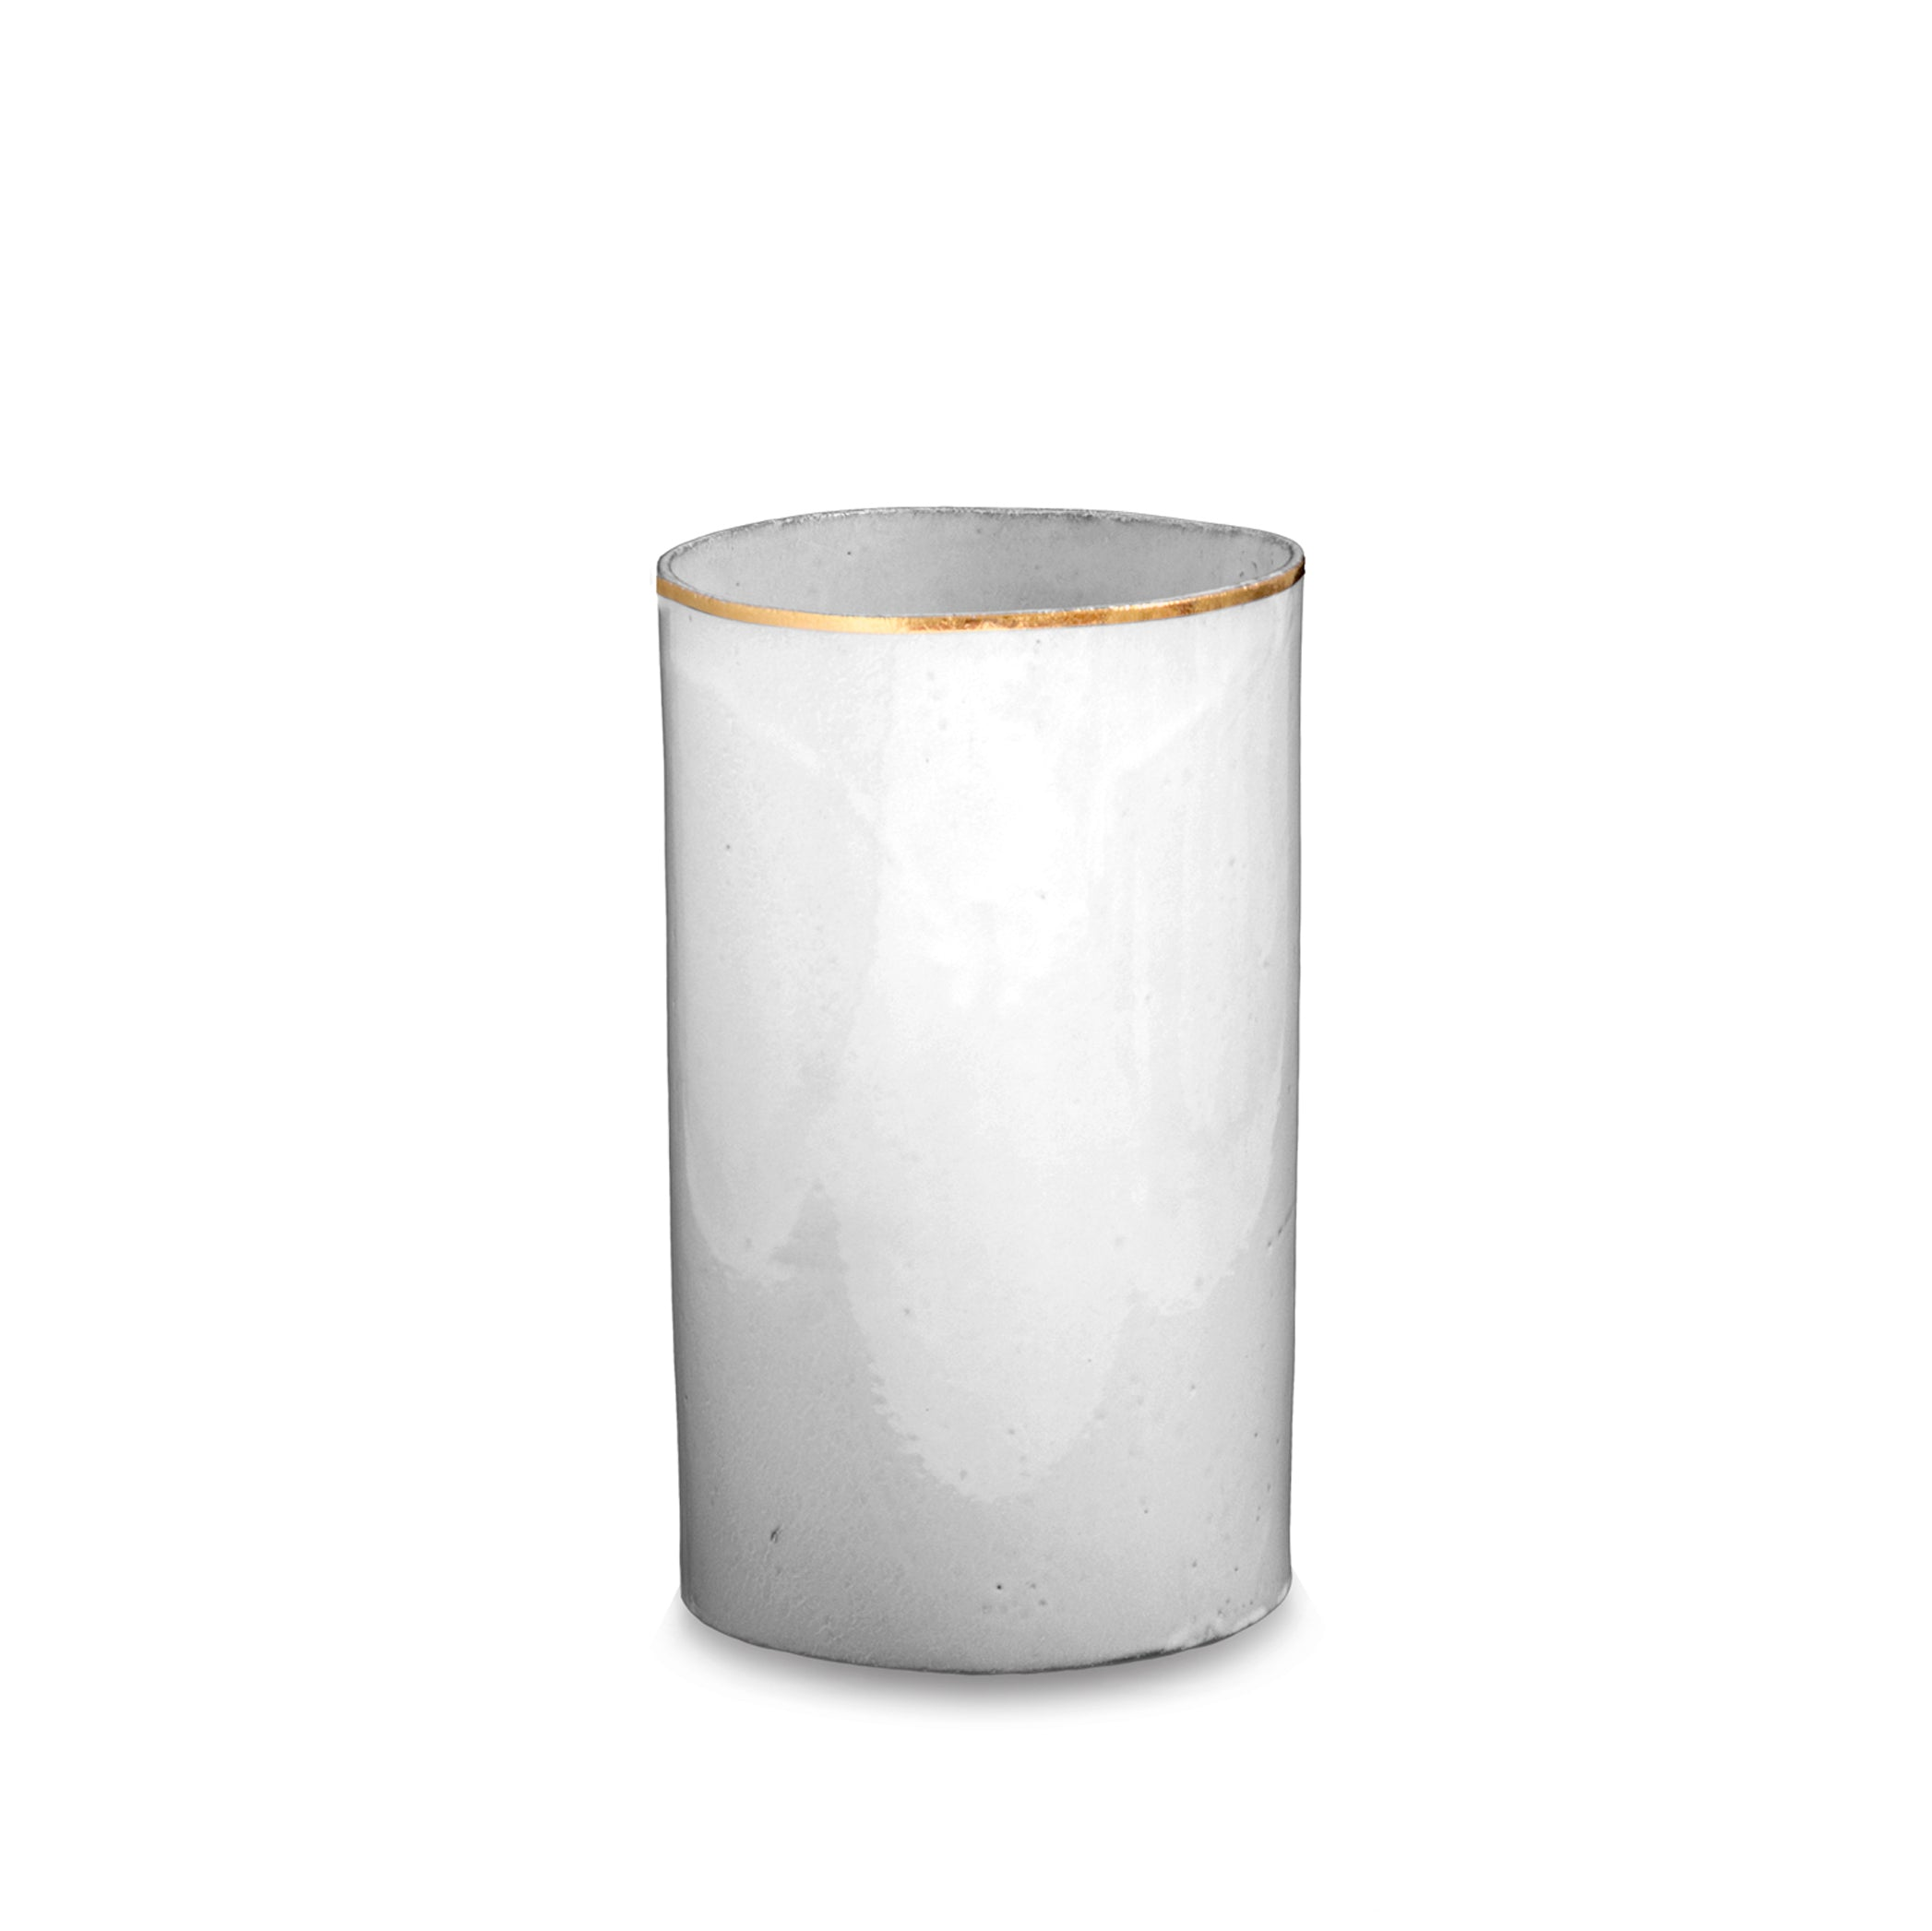 Crésus Tube Vase with Gold Rim by Astier de Villatte